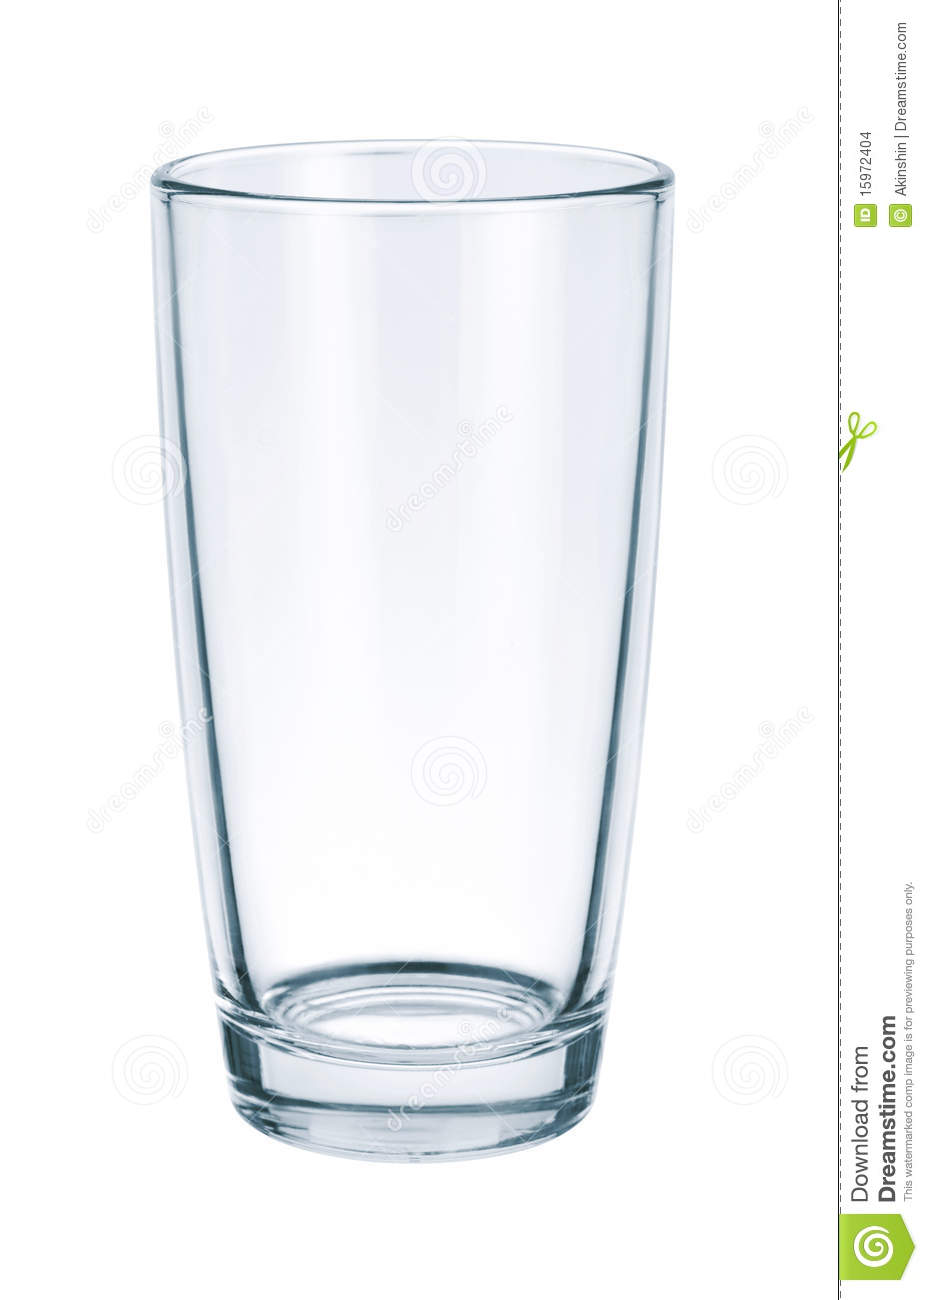 Glass Empty Stock Images - Image: 15972404